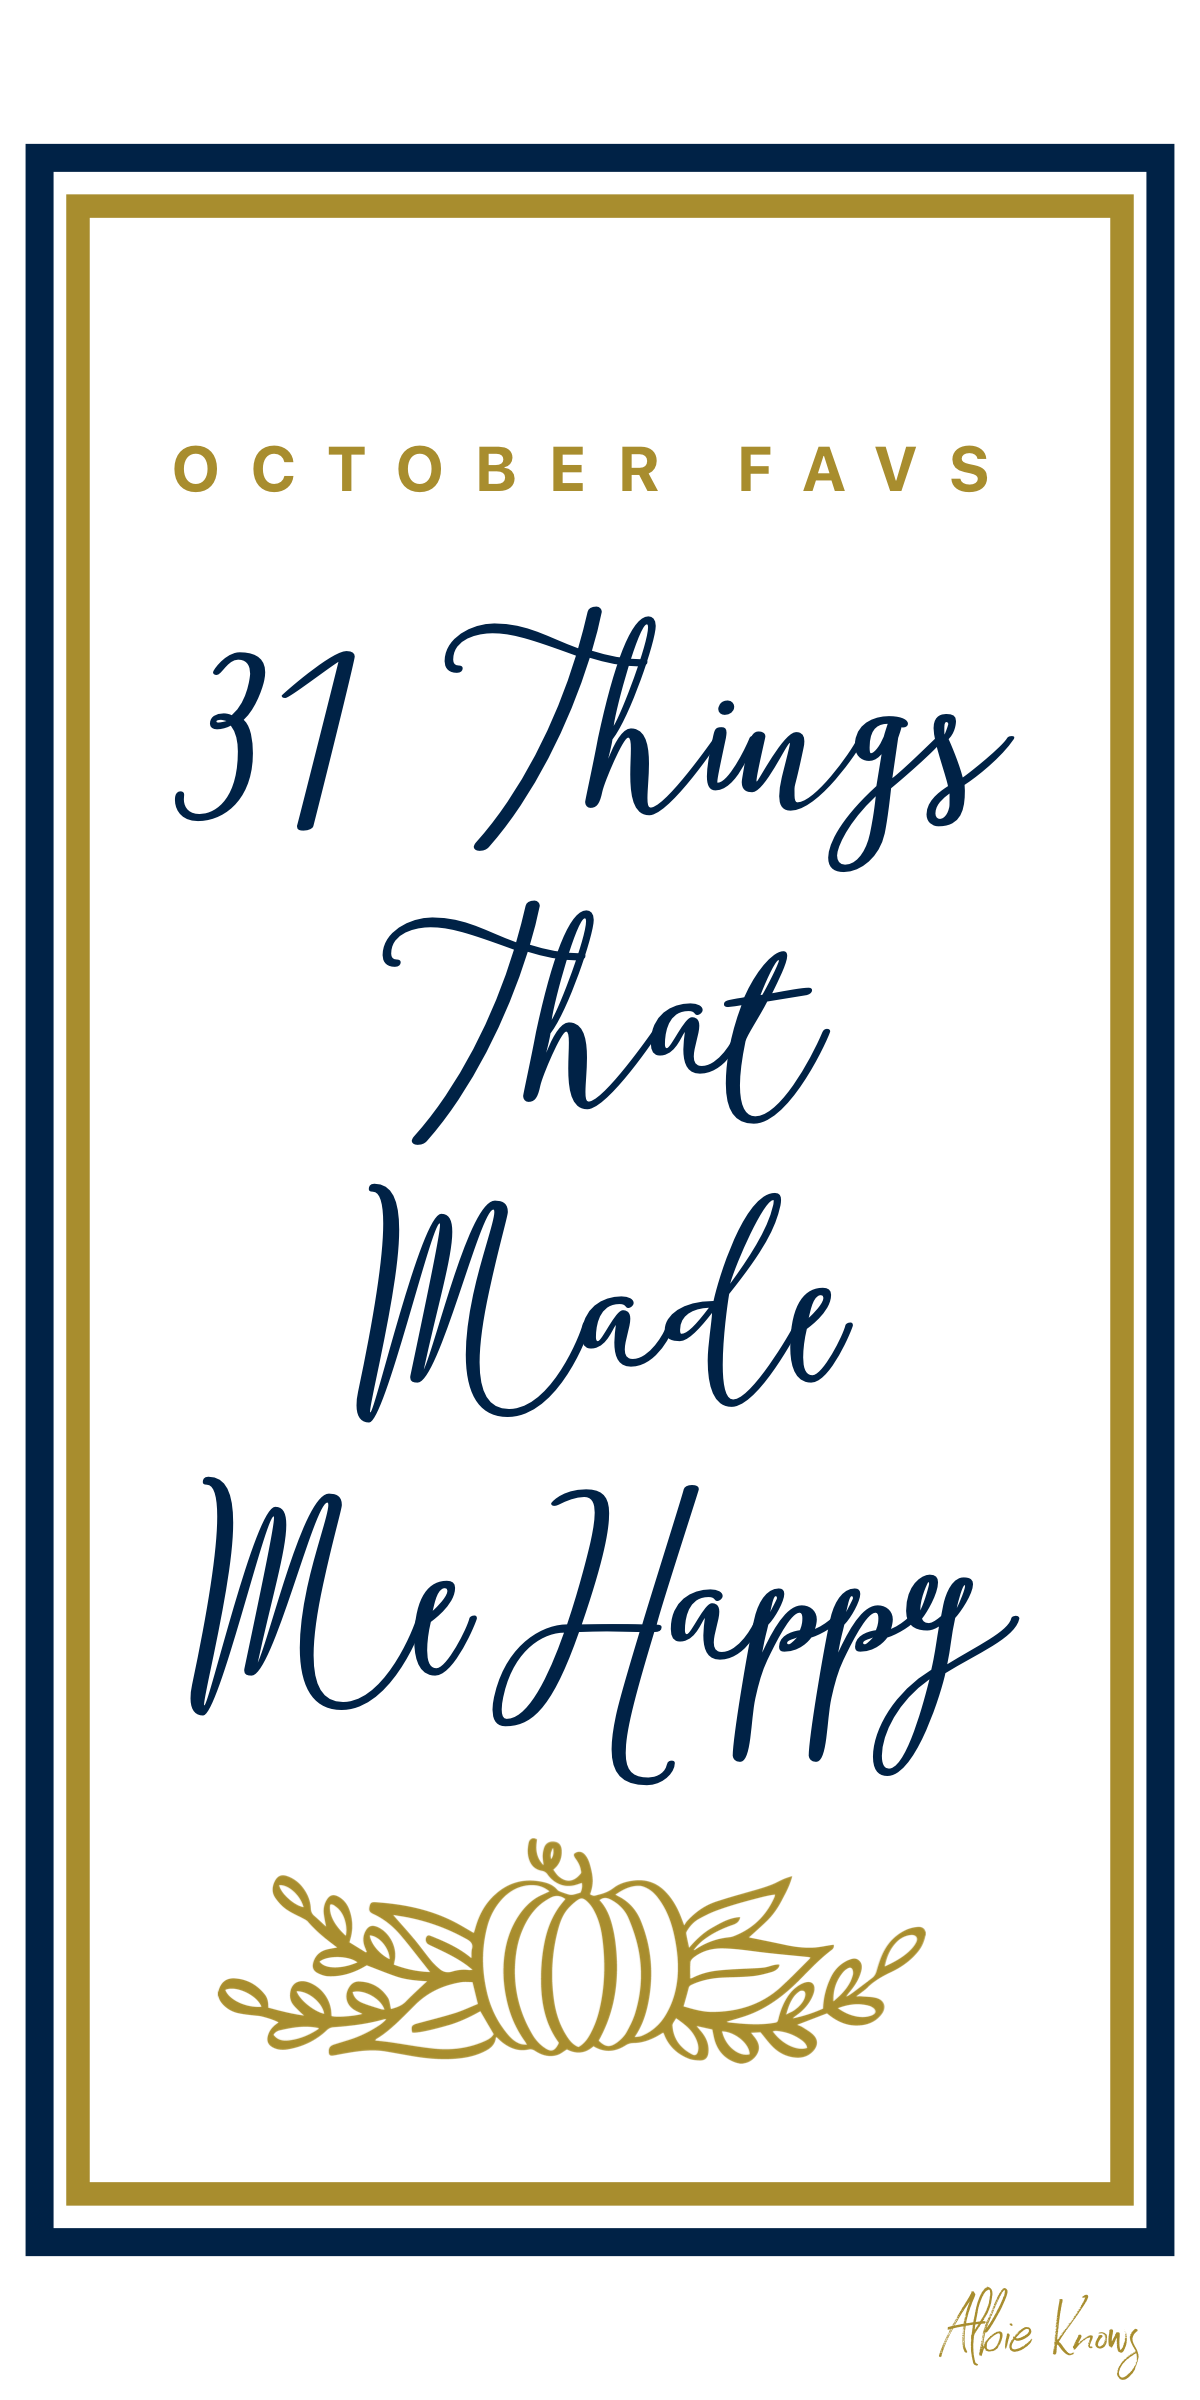 Albie Knows October Favorites: 31 Things That Made Me Happy